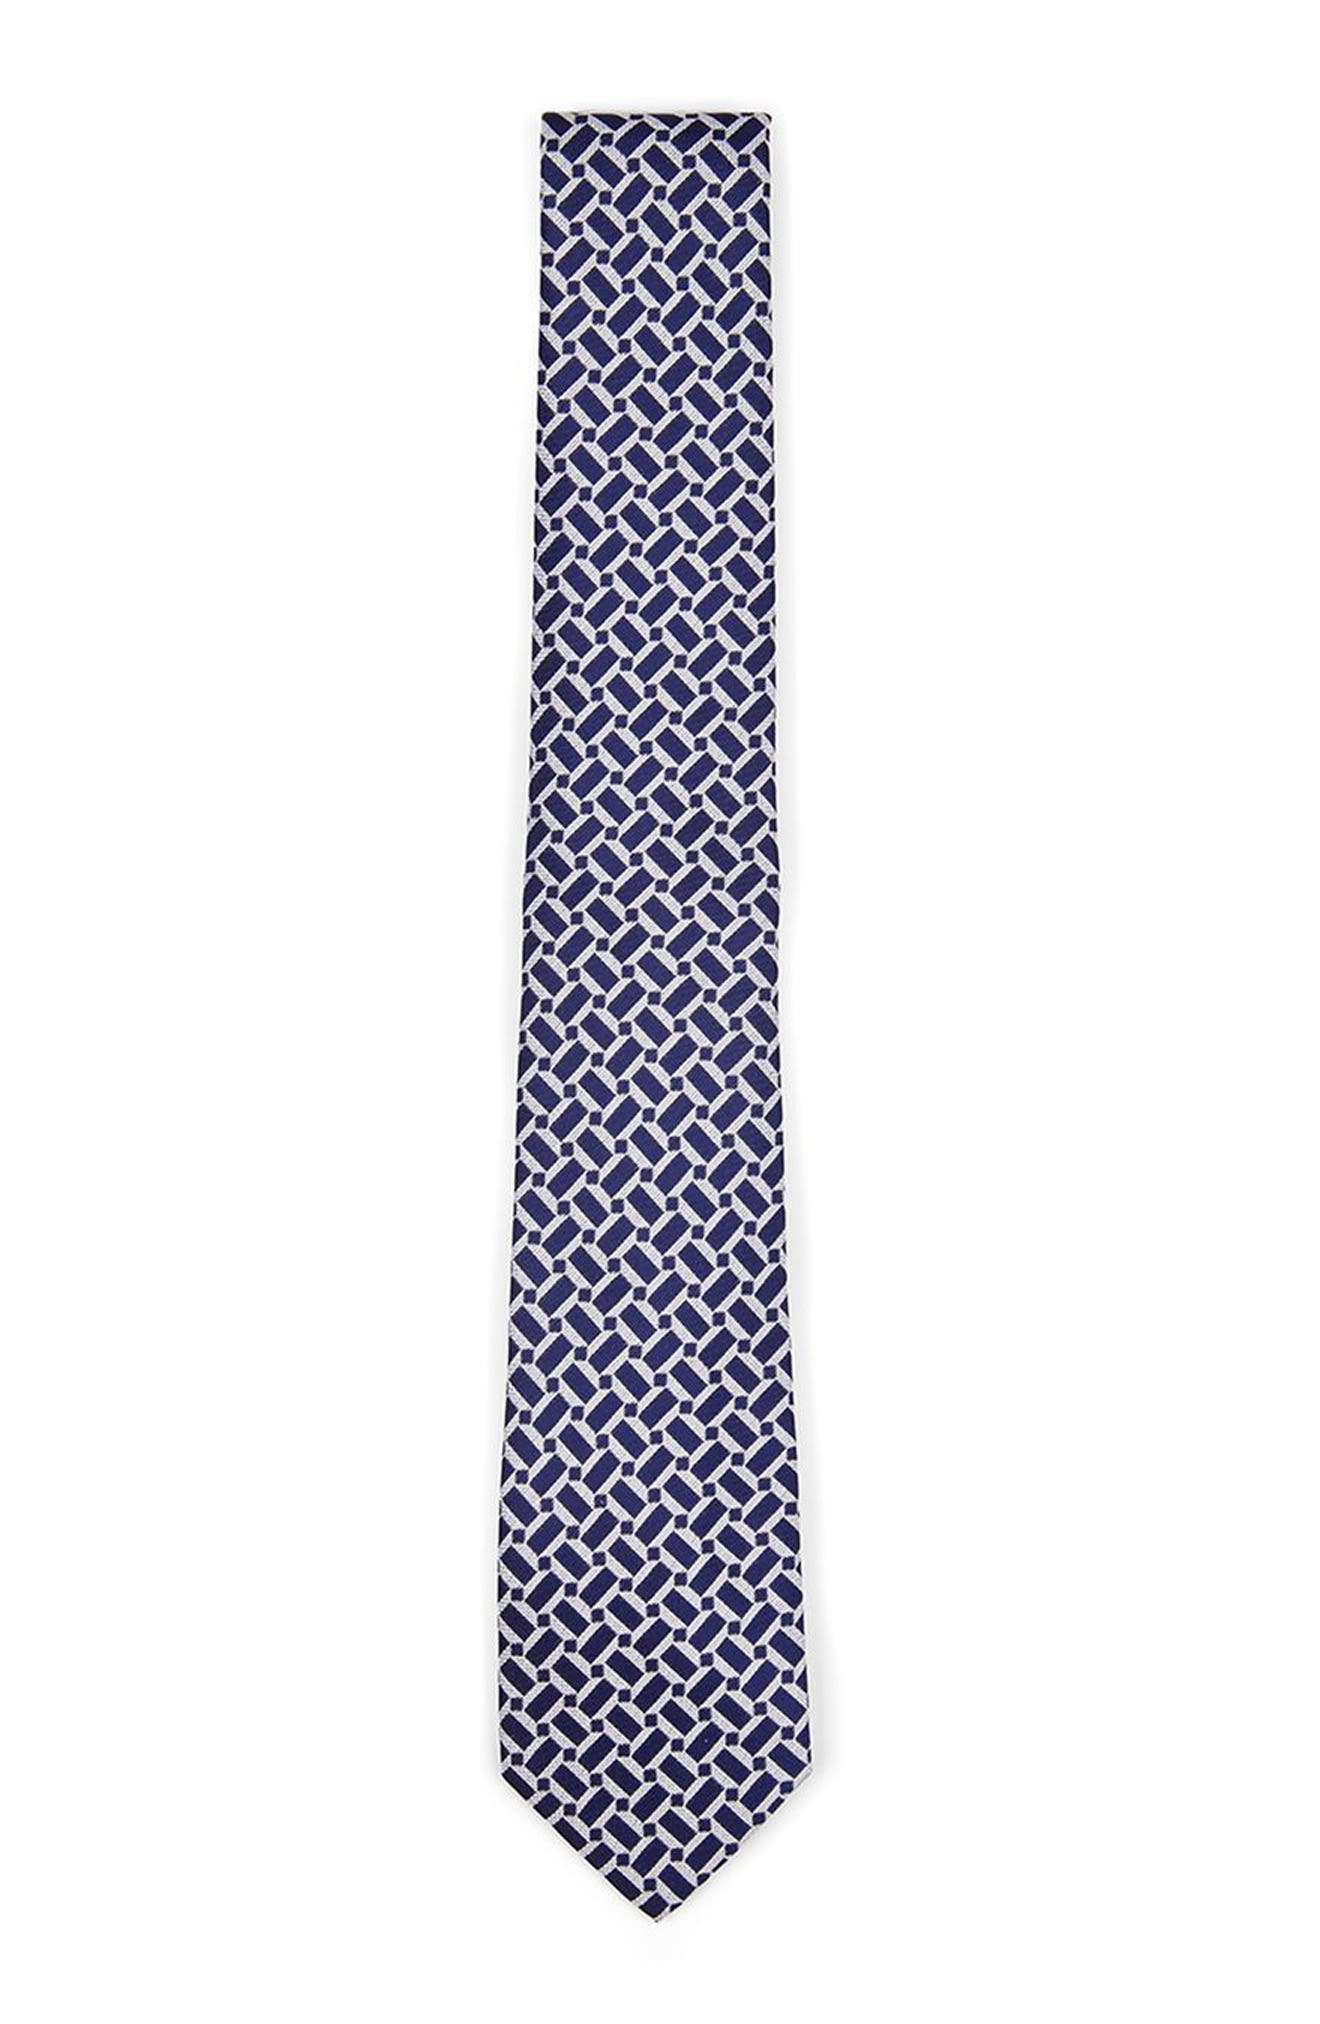 Geo Print Woven Tie,                             Main thumbnail 1, color,                             Blue Multi